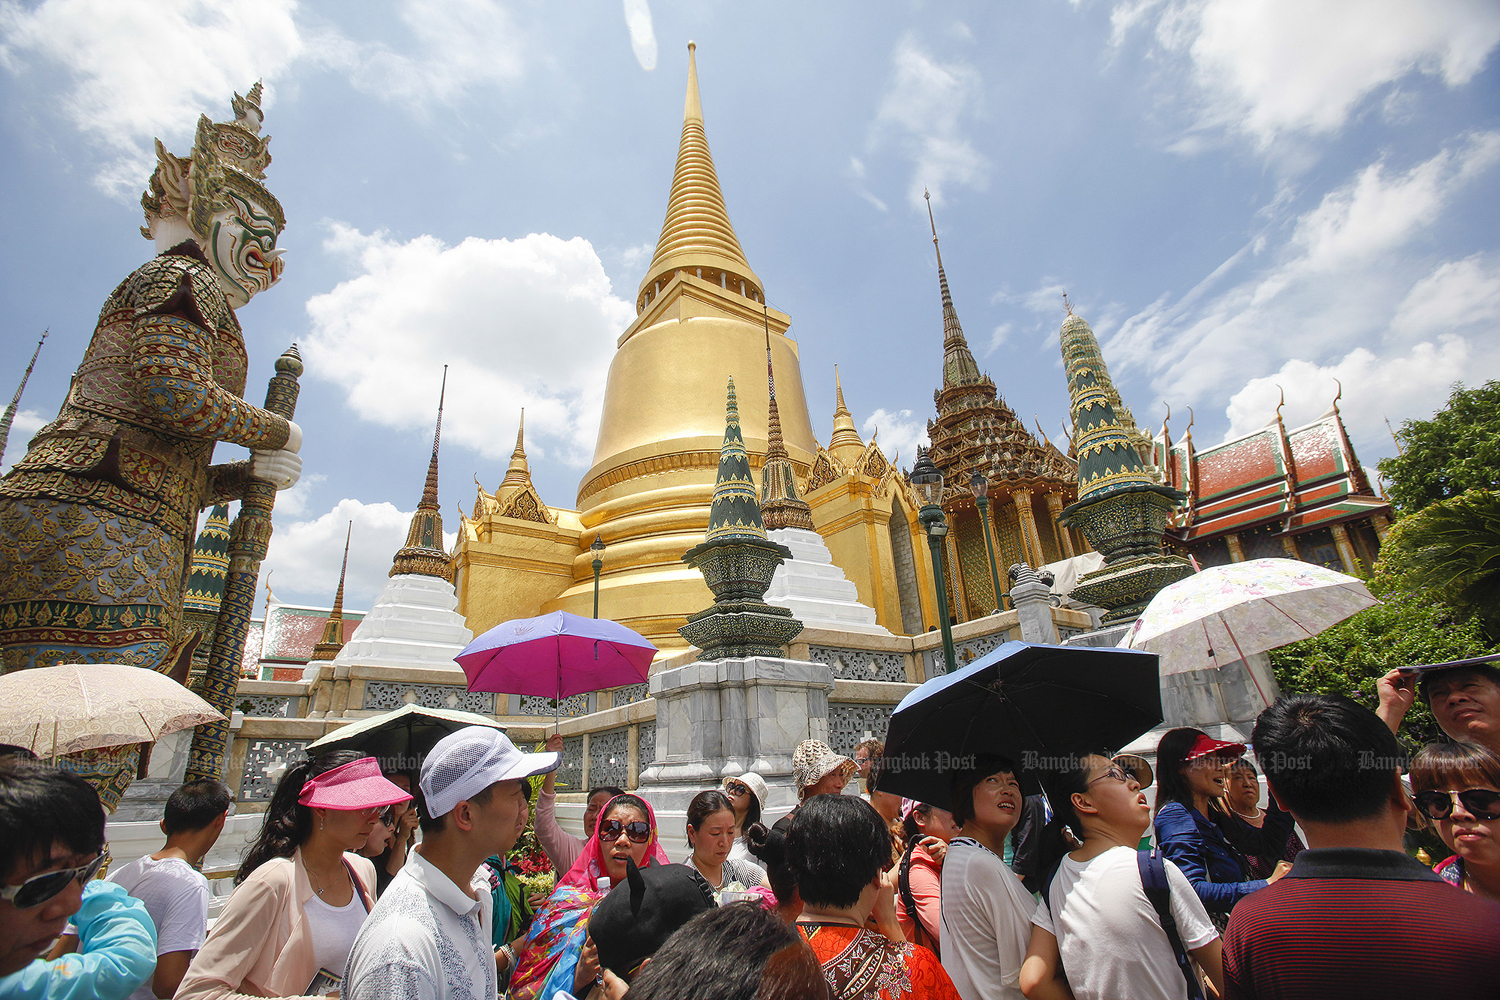 Chinese visitors tour the Temple of the Emerald Buddha. (Photo by Pattarapong Chatpattarasill)